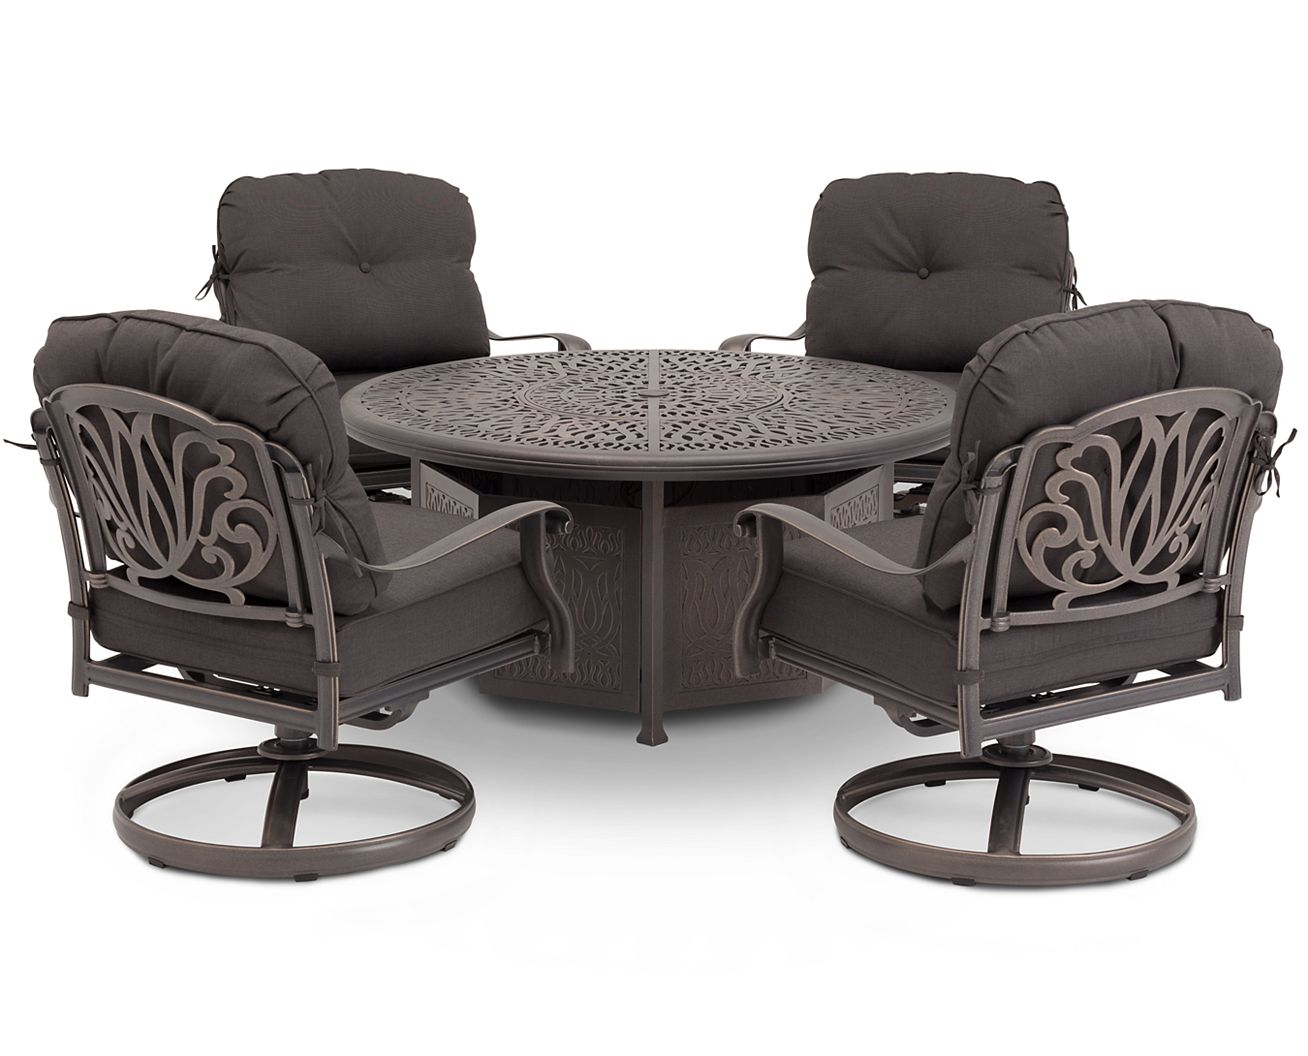 Geneva 5 Pc. Fire Pit Group - Patio Furniture, Outdoor Furniture Furniture Row